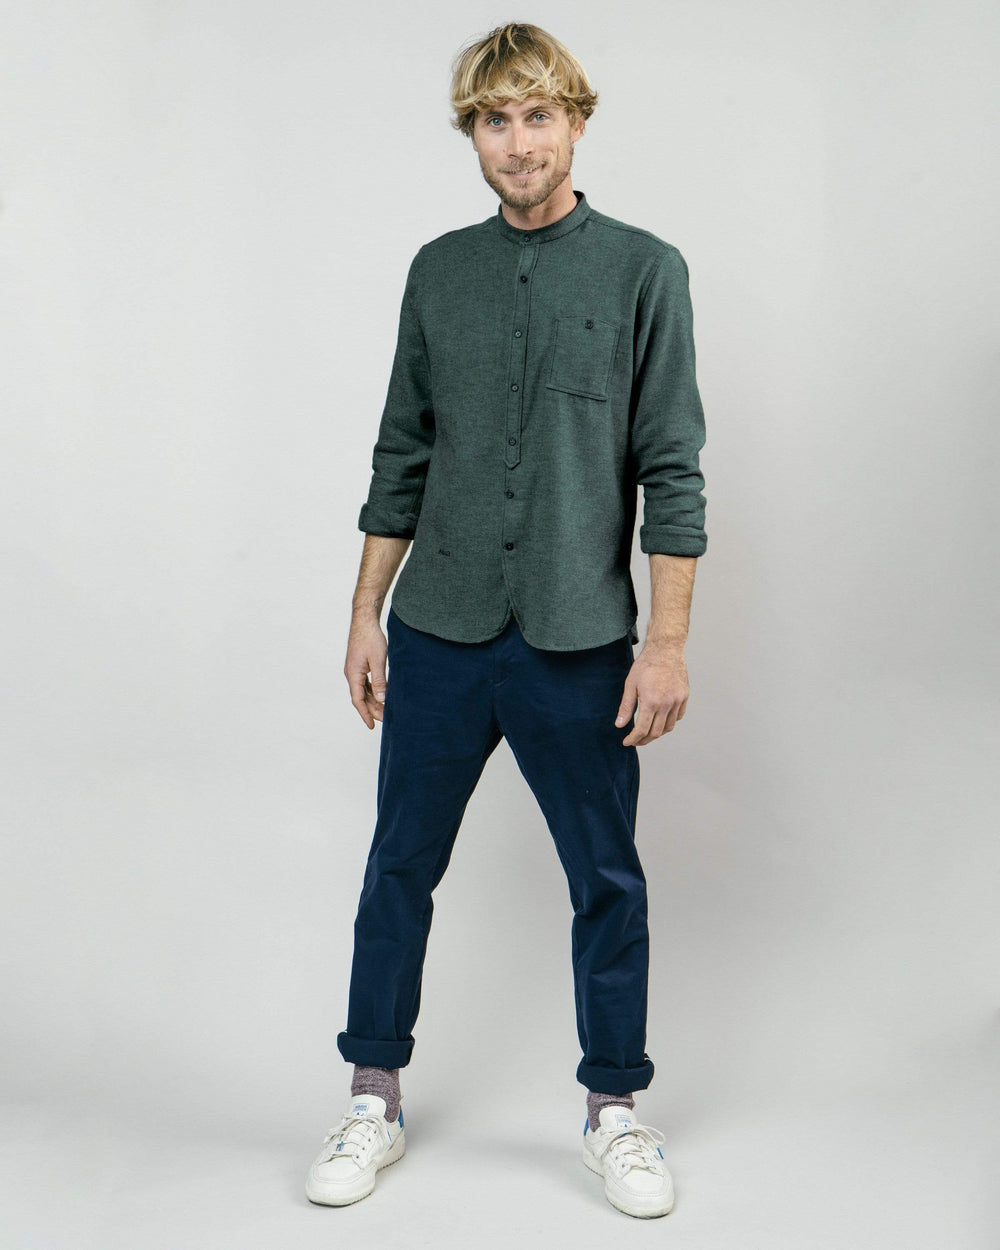 Brava Fabrics Long Sleeve Shirts Alaska Green Essential Shirt